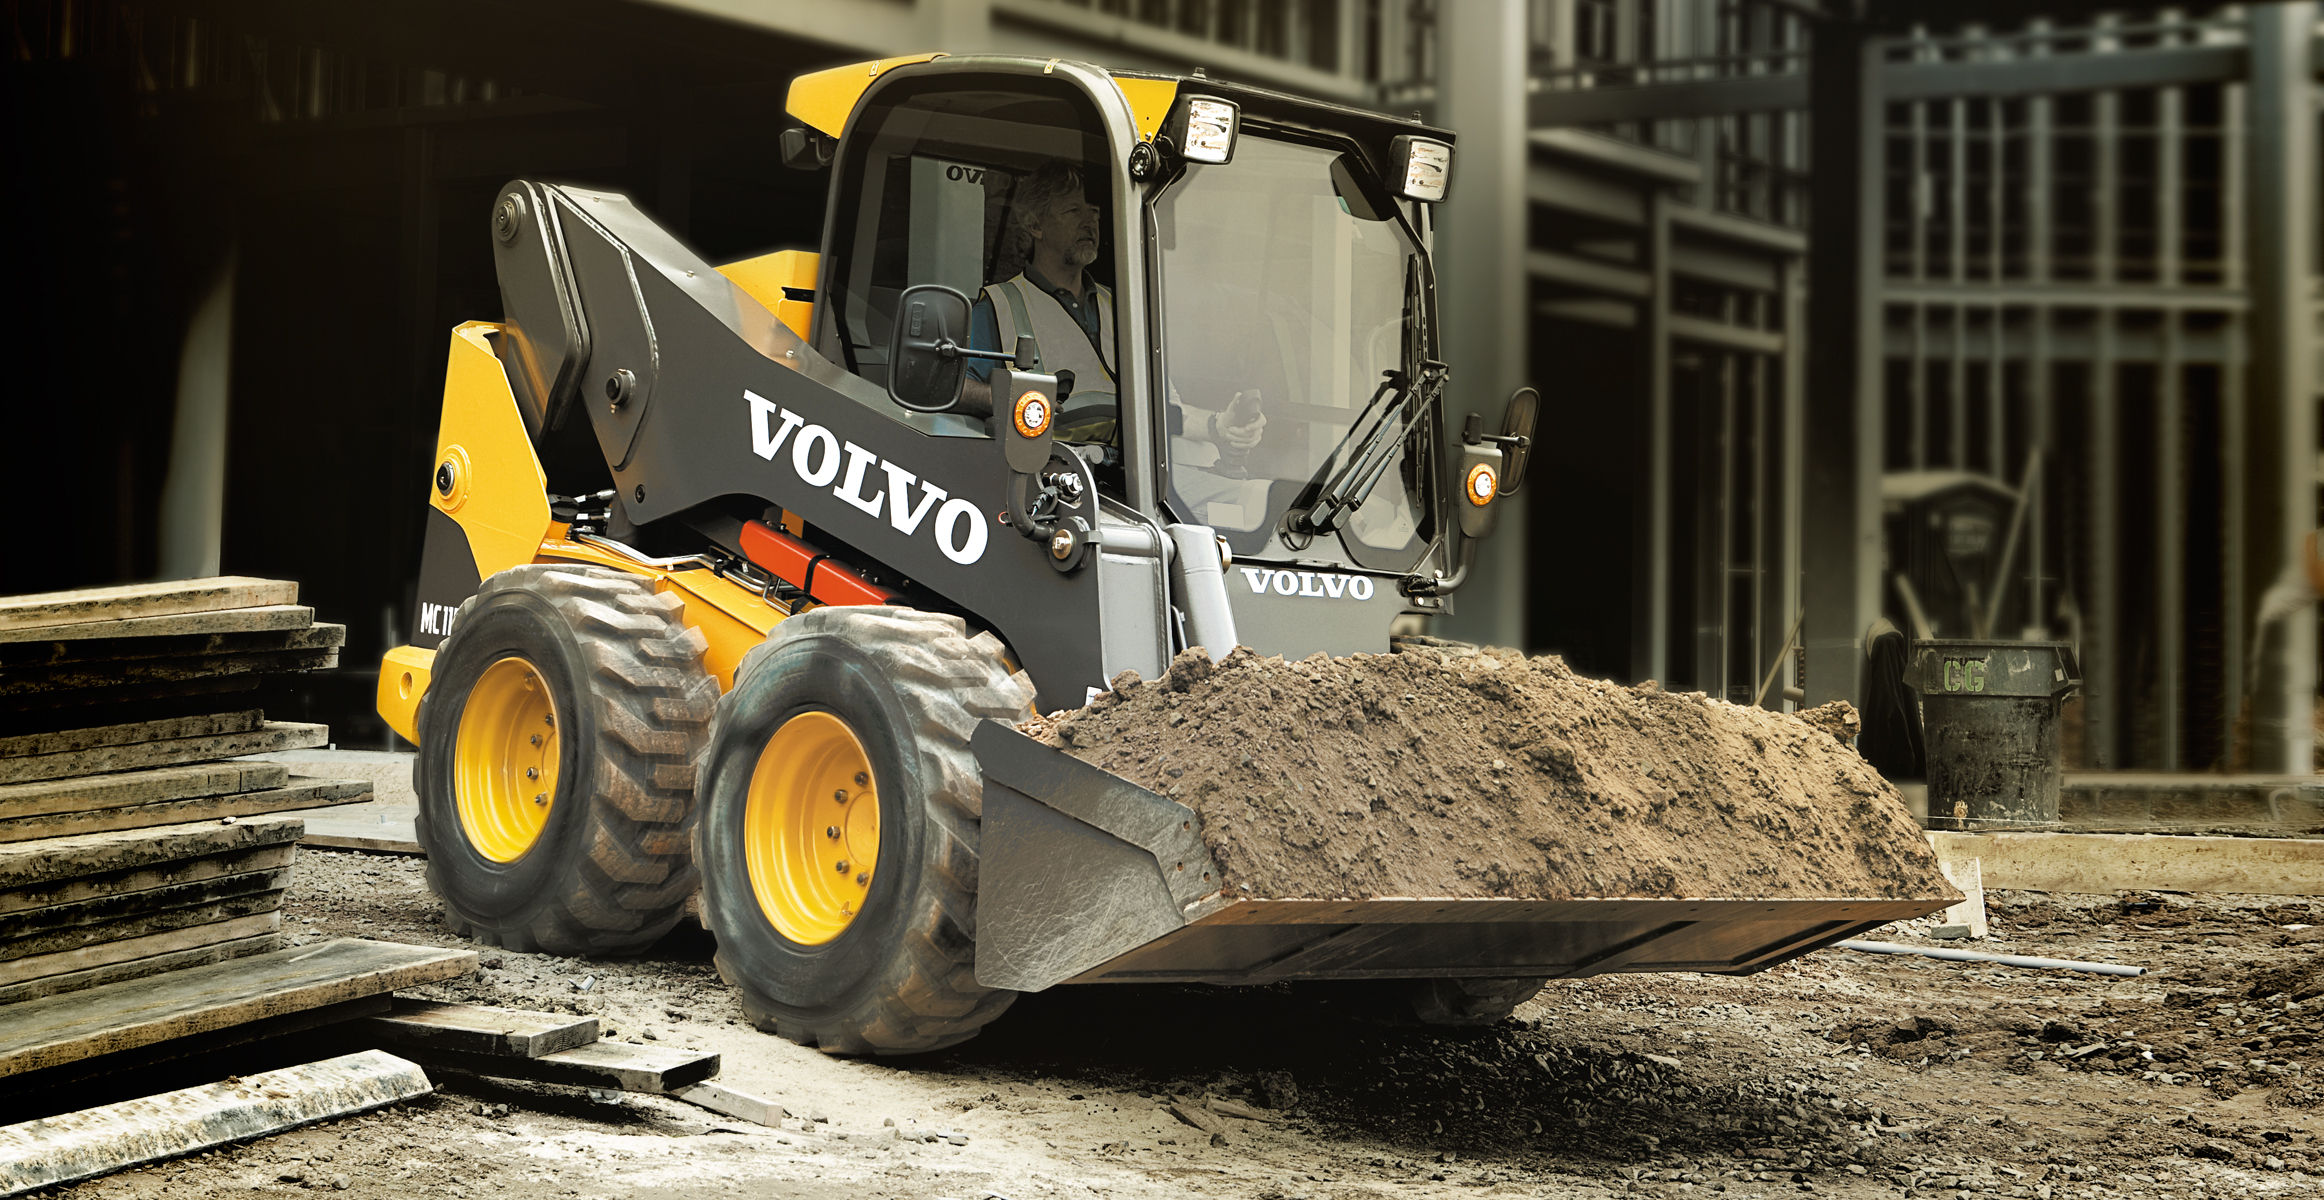 Skid Steer Attachments - Skid Steer Loaders - Volvo Construction Equipment